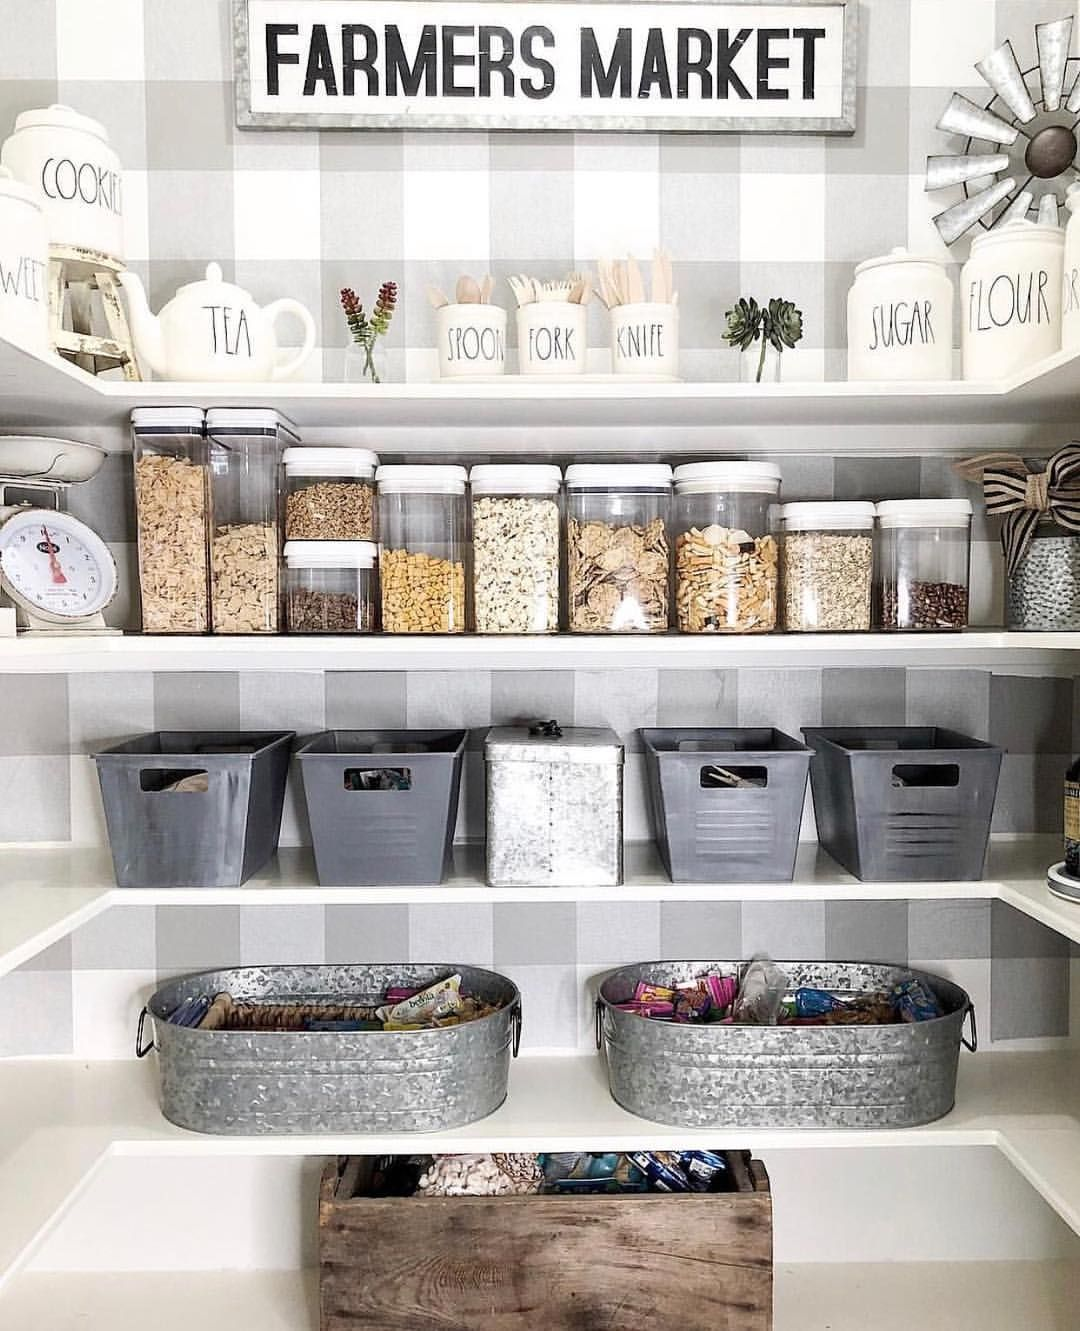 I M Not Sure What I Love More The Raedunn On The Top Shelf Or The Adorable Gingham Wallpaper In This Pantry Wallpaper Diy Pantry Organization Farmhouse Pantry